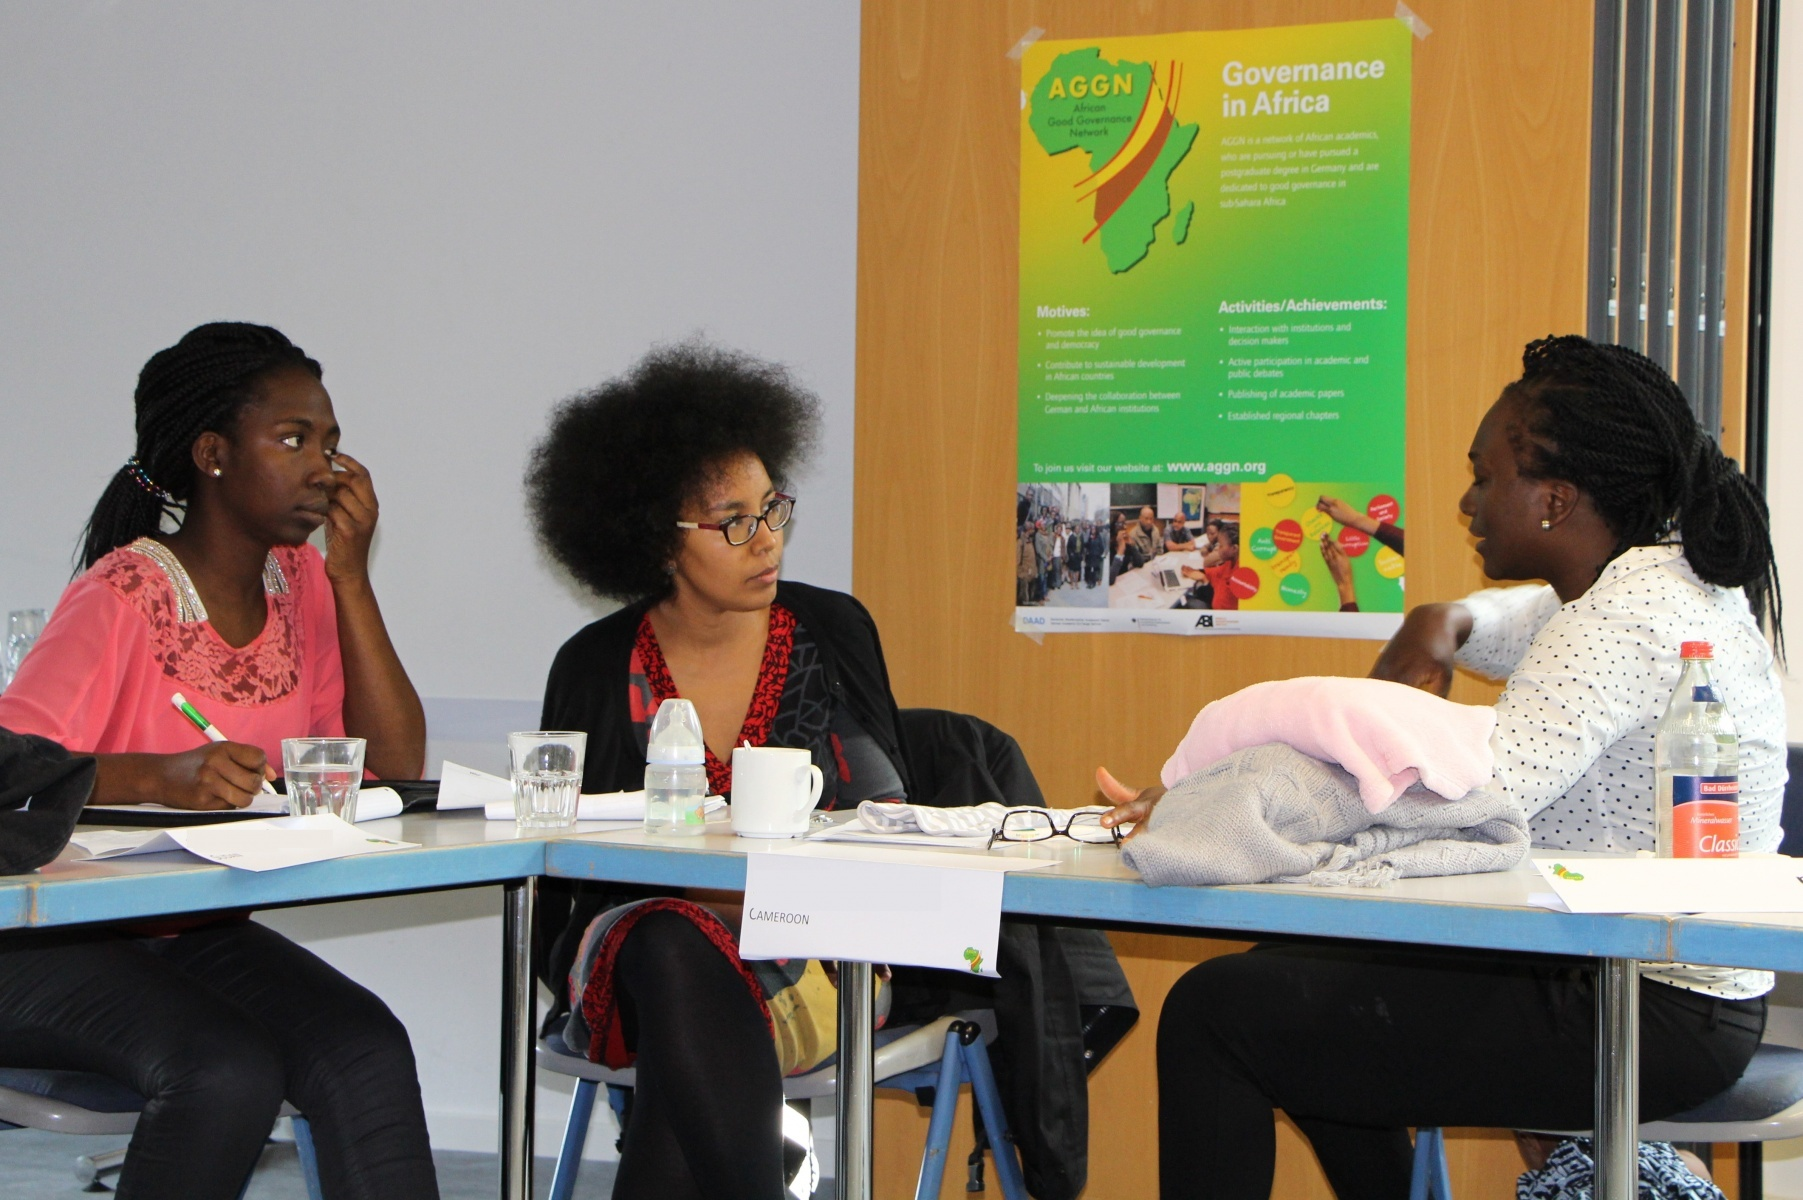 AGGN fellows in discussion